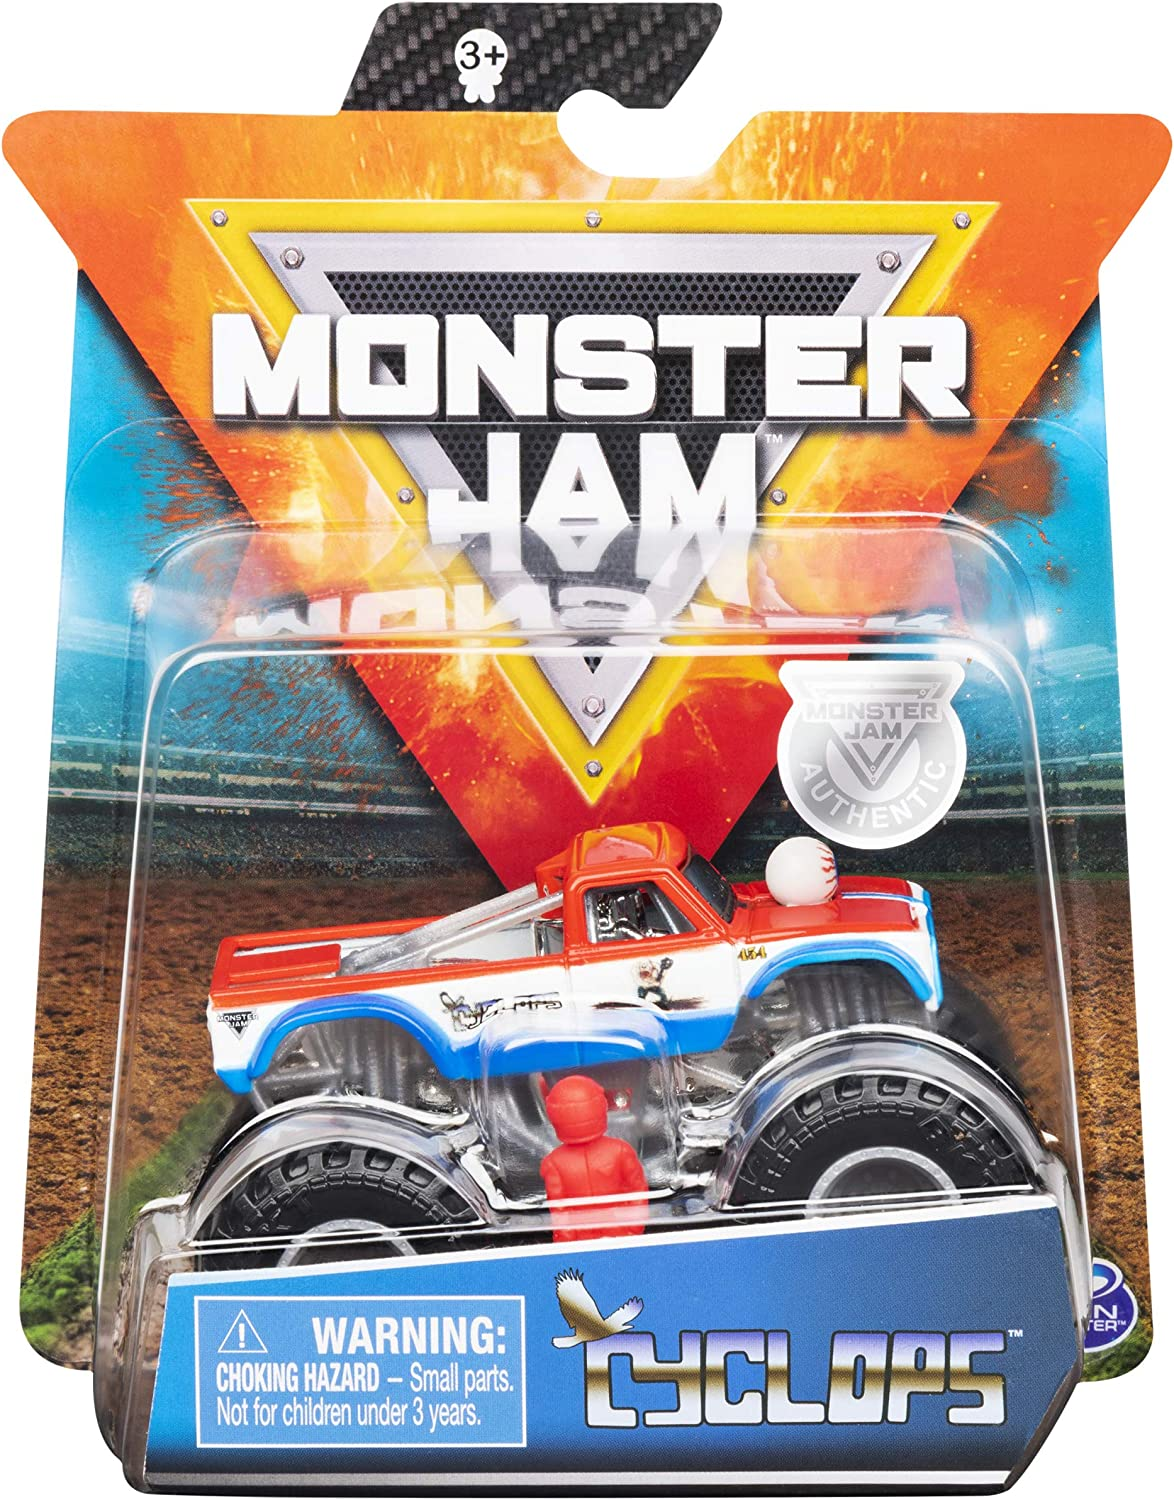 Amazon Com Monster Jam 2019 Retro Rebels Cyclops 1 64 Scale Diecast Monster Truck With Figure And Poster By Spin Master Toys Games